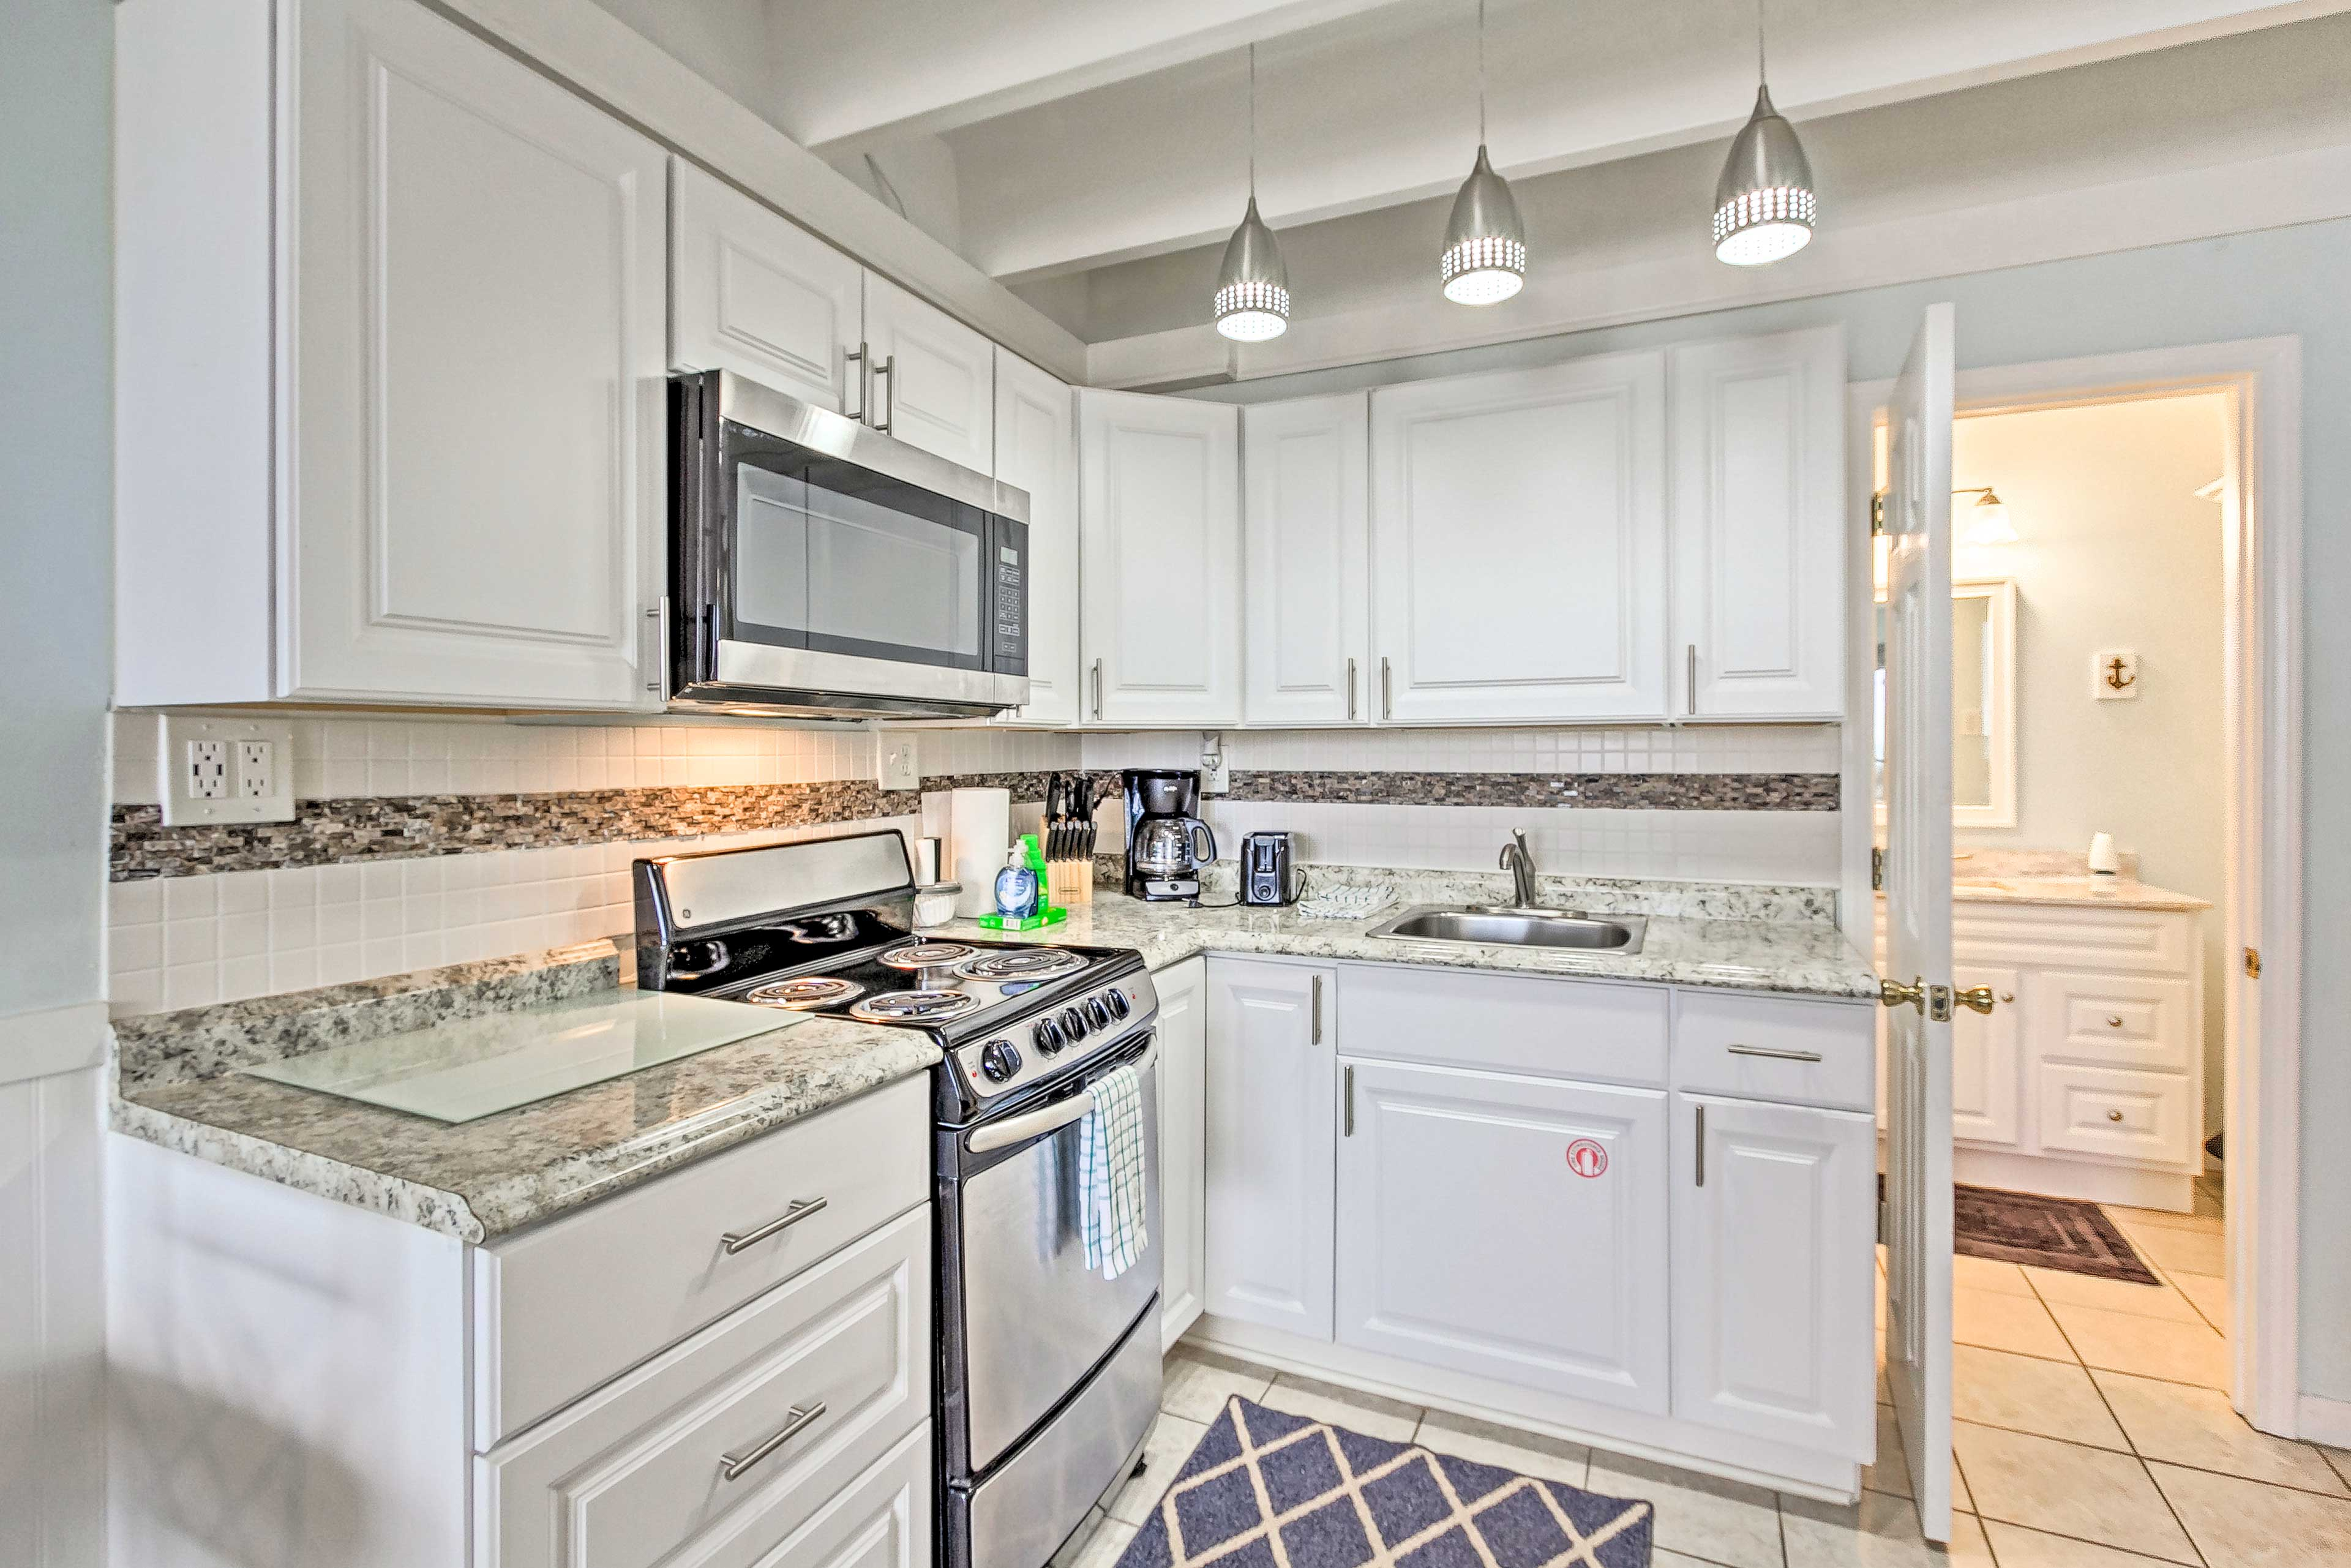 Prepare meals together in the fully equipped kitchen.